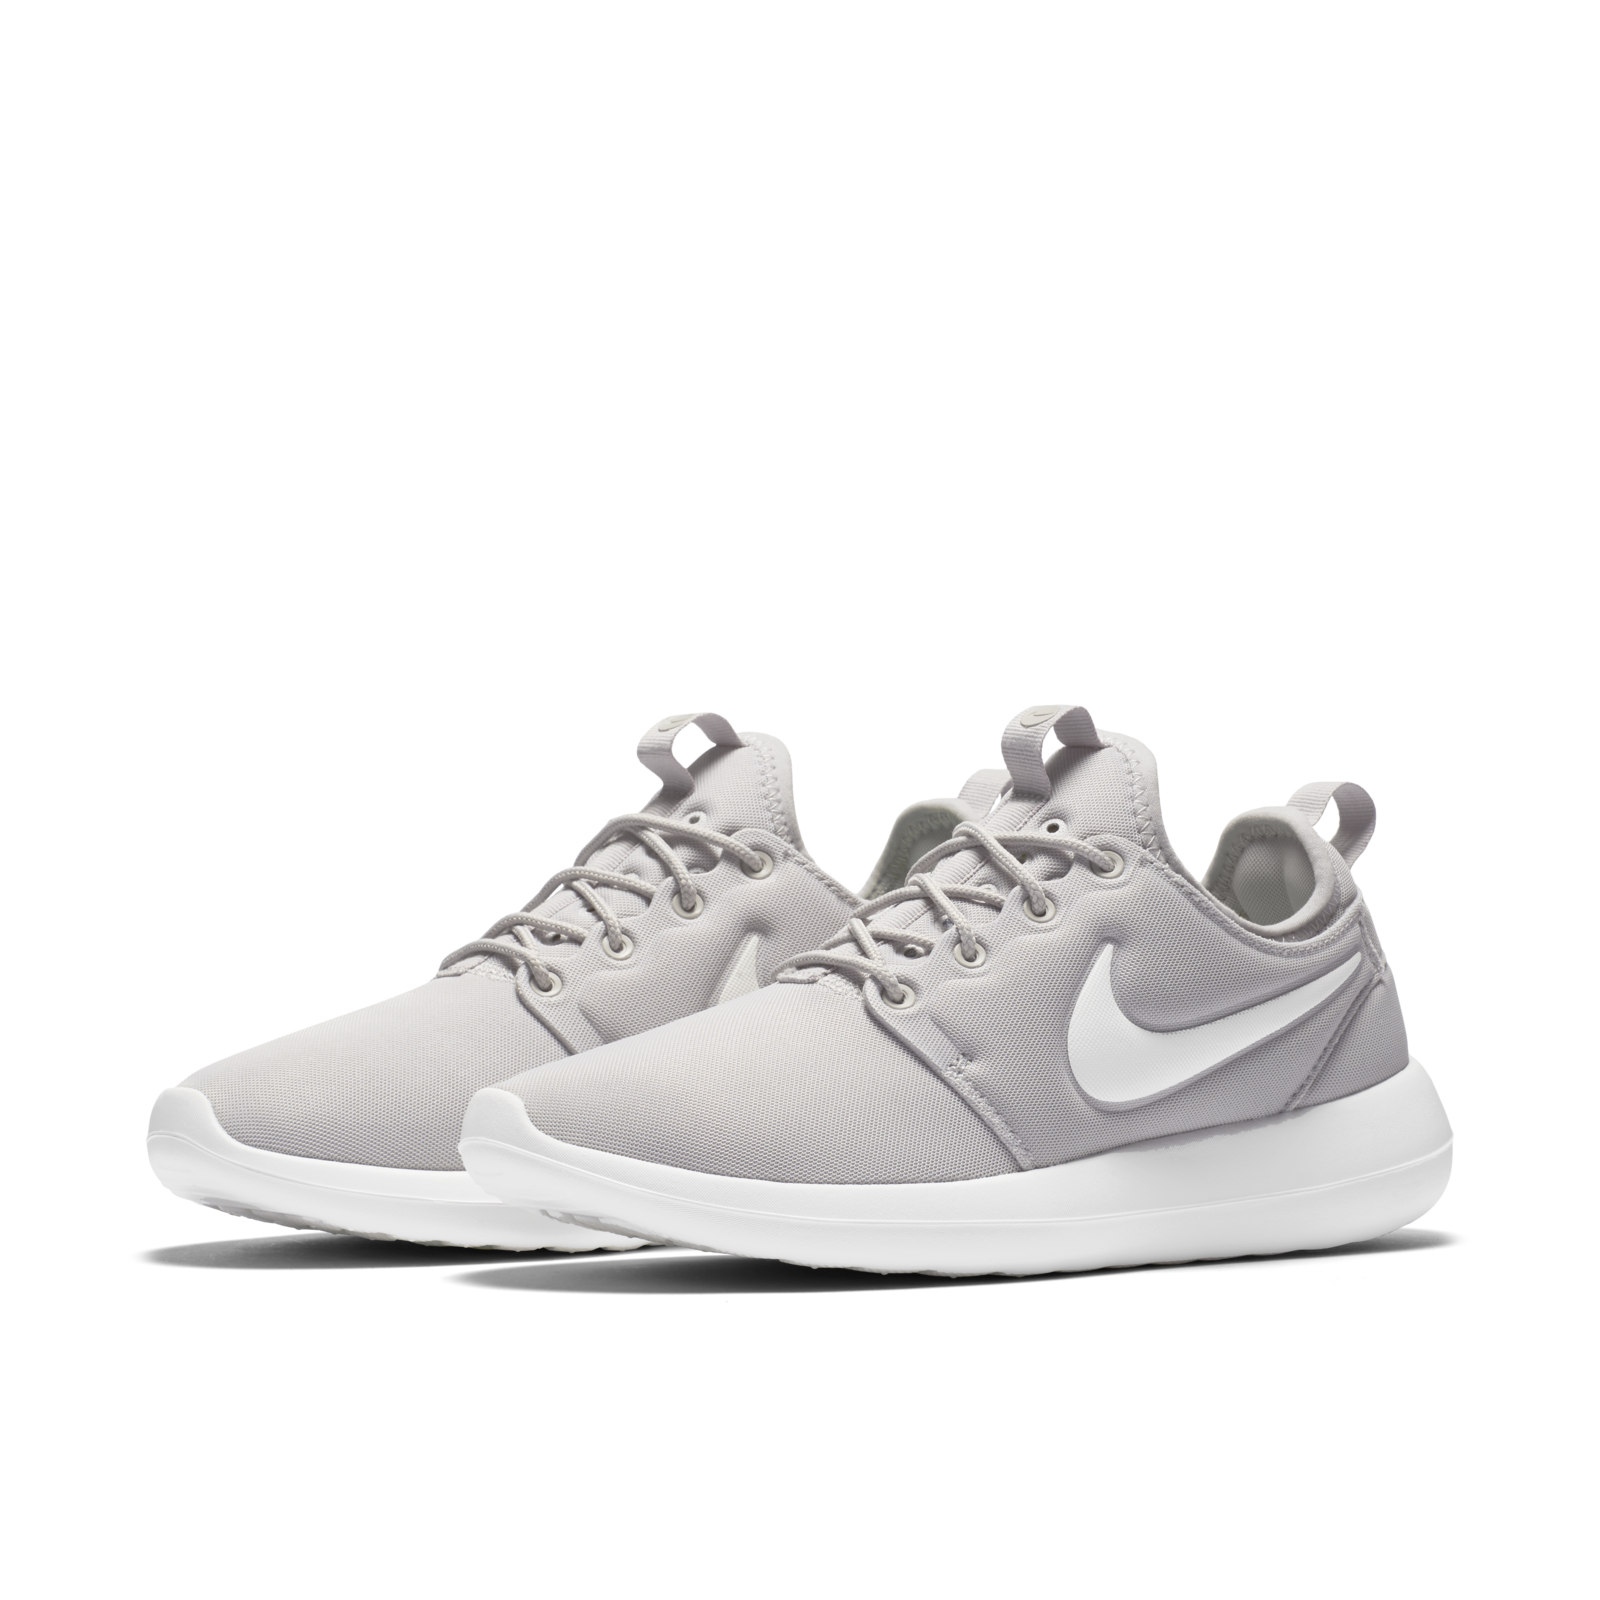 finest selection 317d5 9ee4f Black and white Roshe / Nike Roshe Run Women